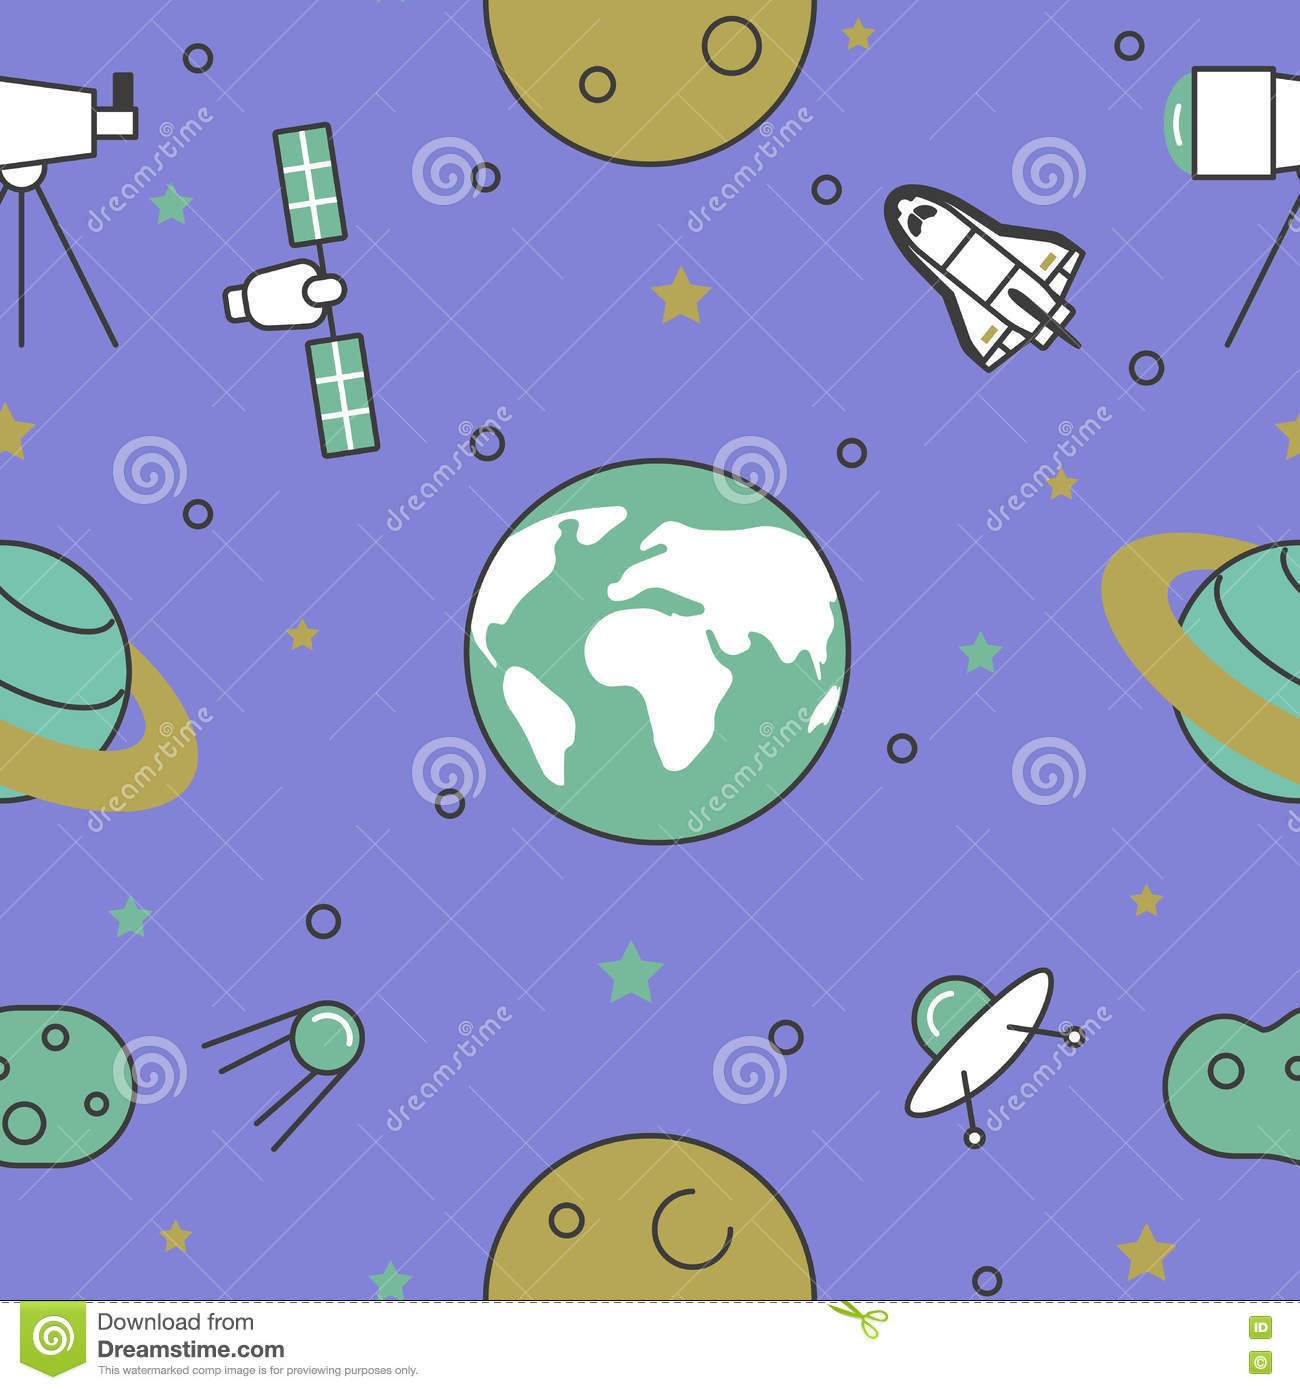 Space Research Line Art Thin Seamless Pattern Background with Shuttle and Planets